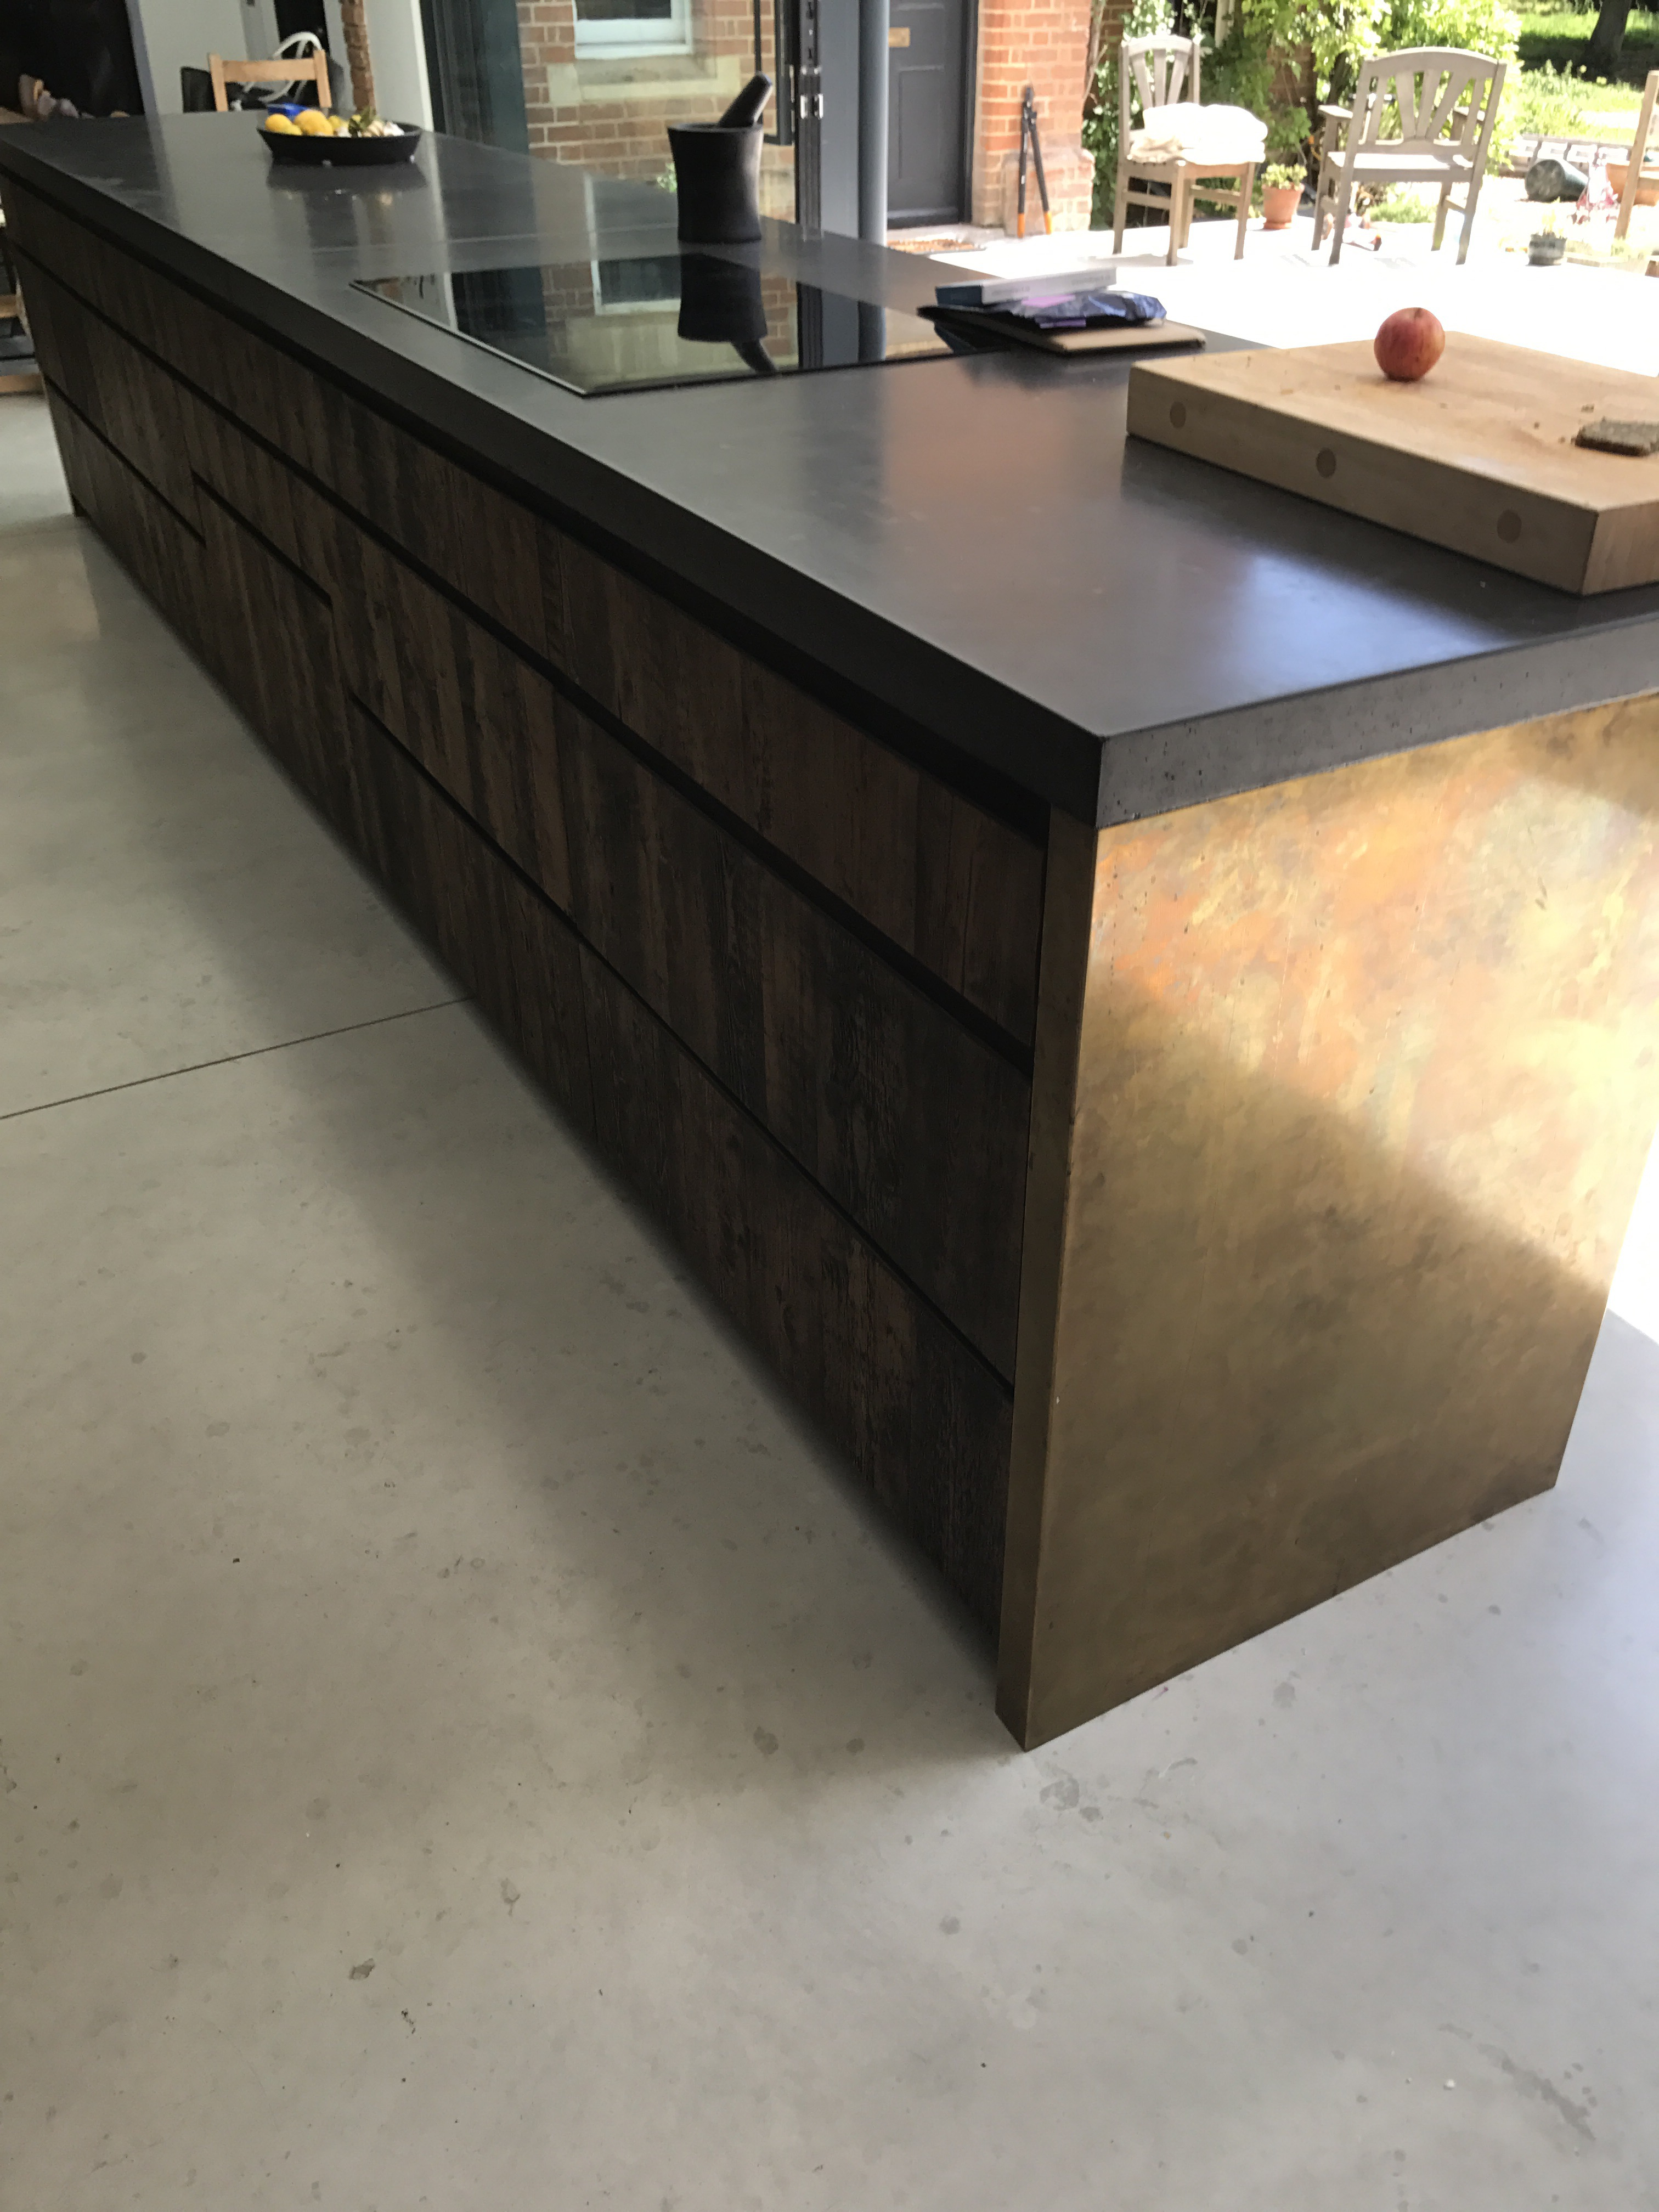 Our Aged Brass kitchen island with Black Polished concrete